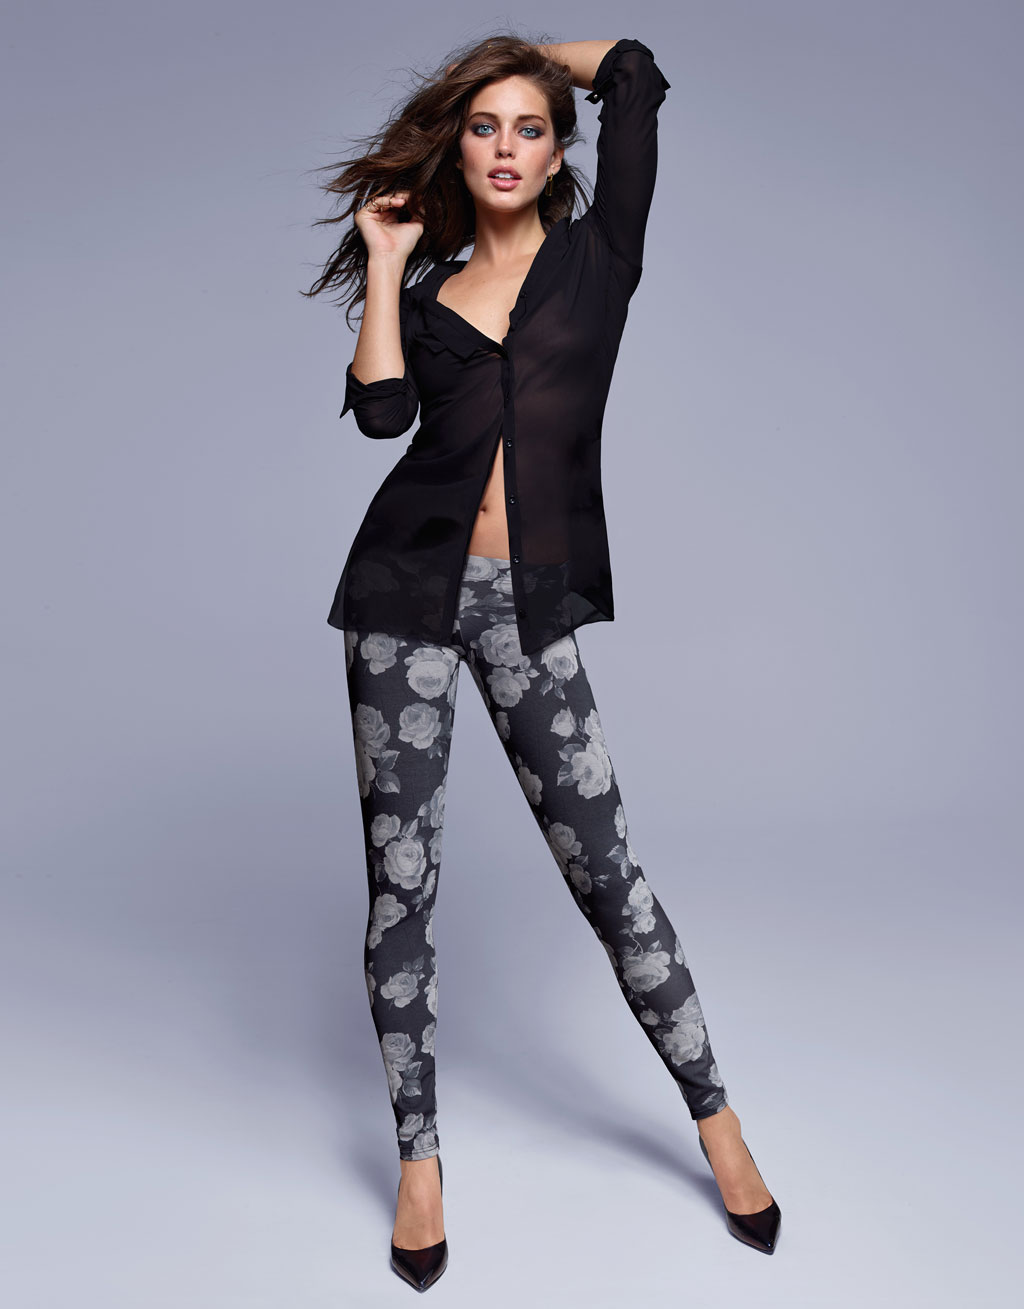 calzedonia leggings leggings sstunfc pomxchd